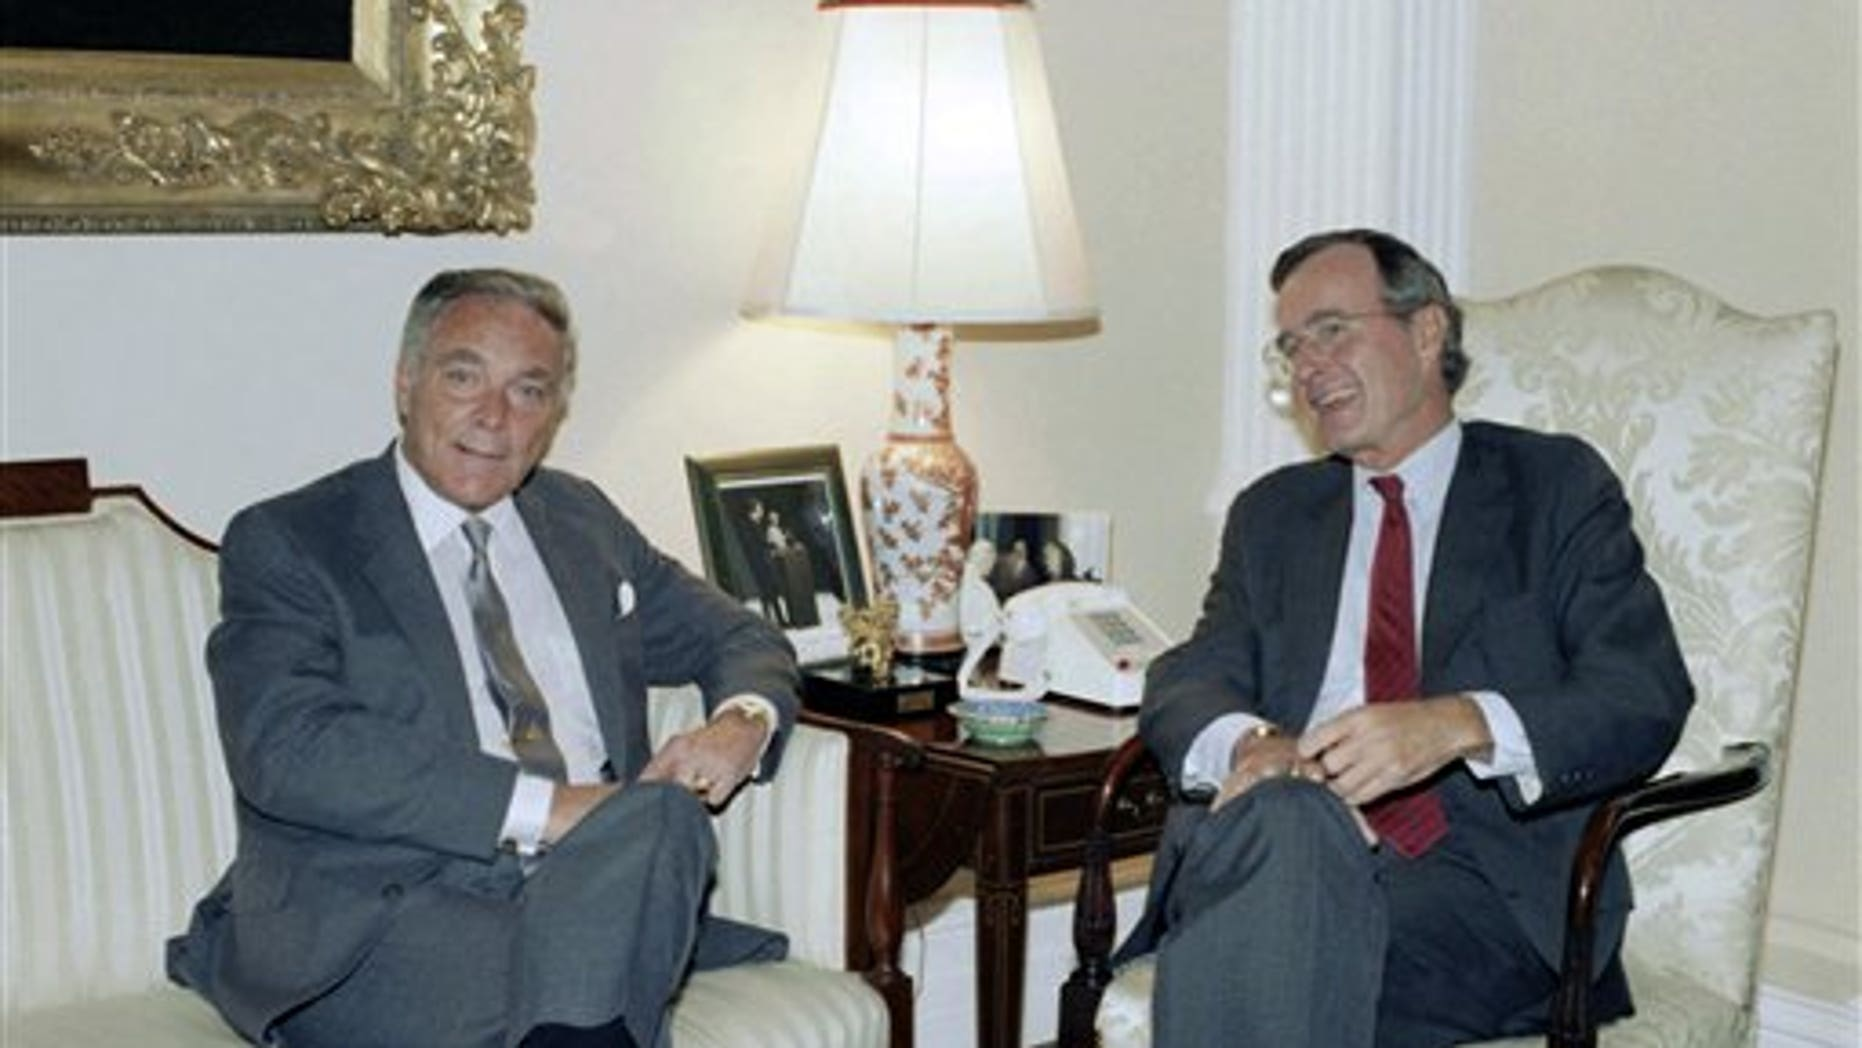 FILE - In this Sept. 25, 1985 photo, U.S. Vice President George H.W. Bush meets with former Secretary of State Alexander Haig. Haig died Saturday, Feb. 20, 2010, at age 85. (AP Photo)